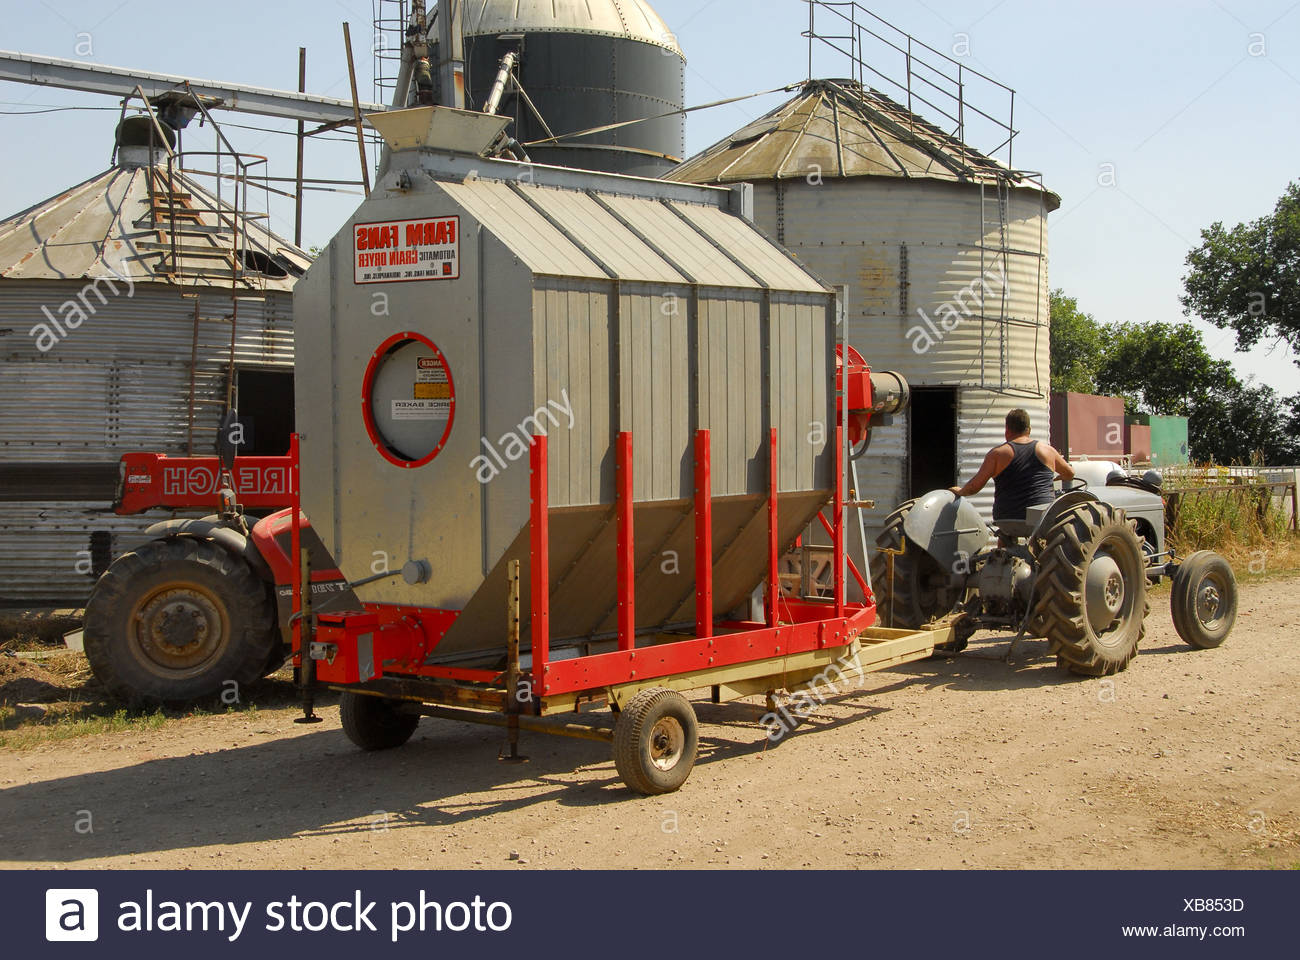 Mobile grain dryer being moved by tractor - Stock Image